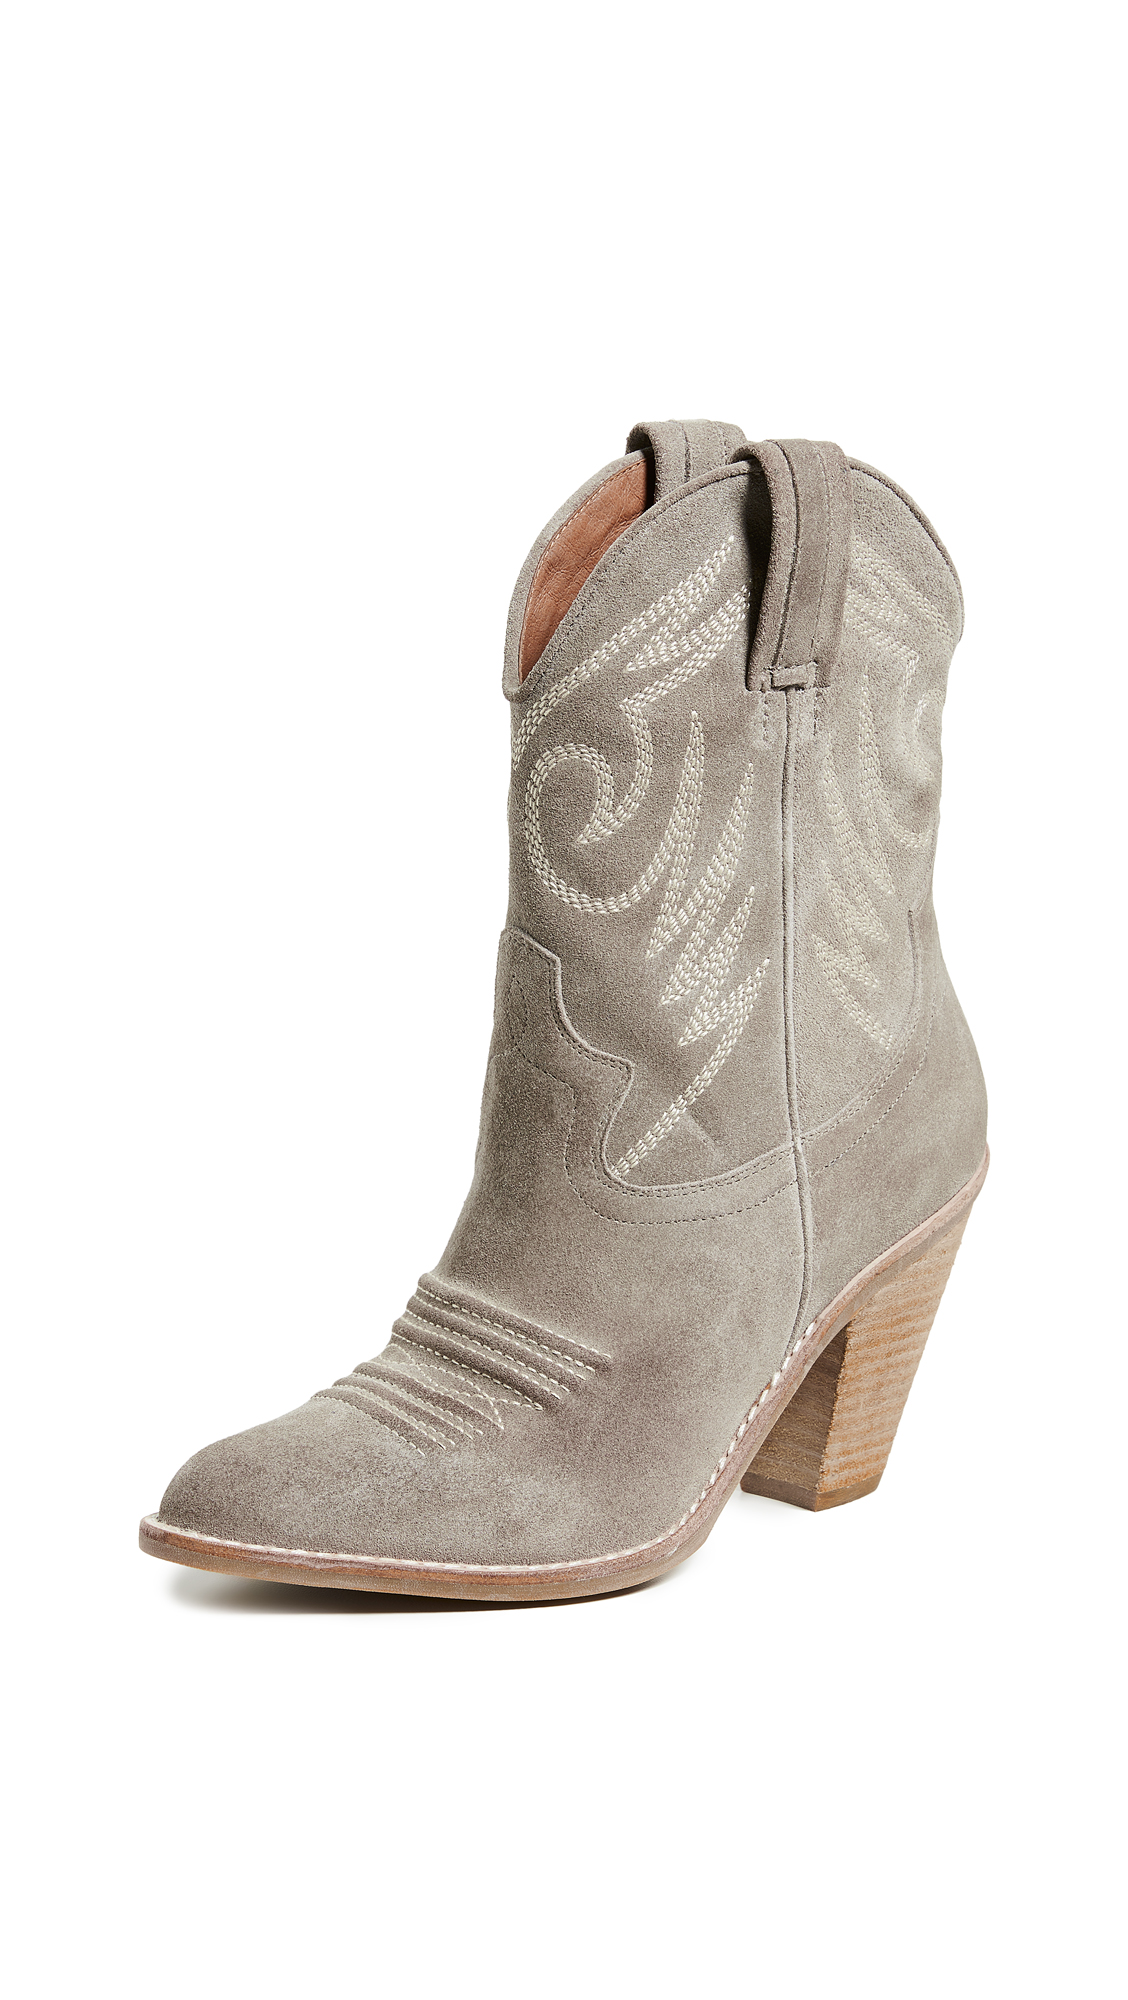 Jeffrey Campbell Audie Western Boots - Taupe